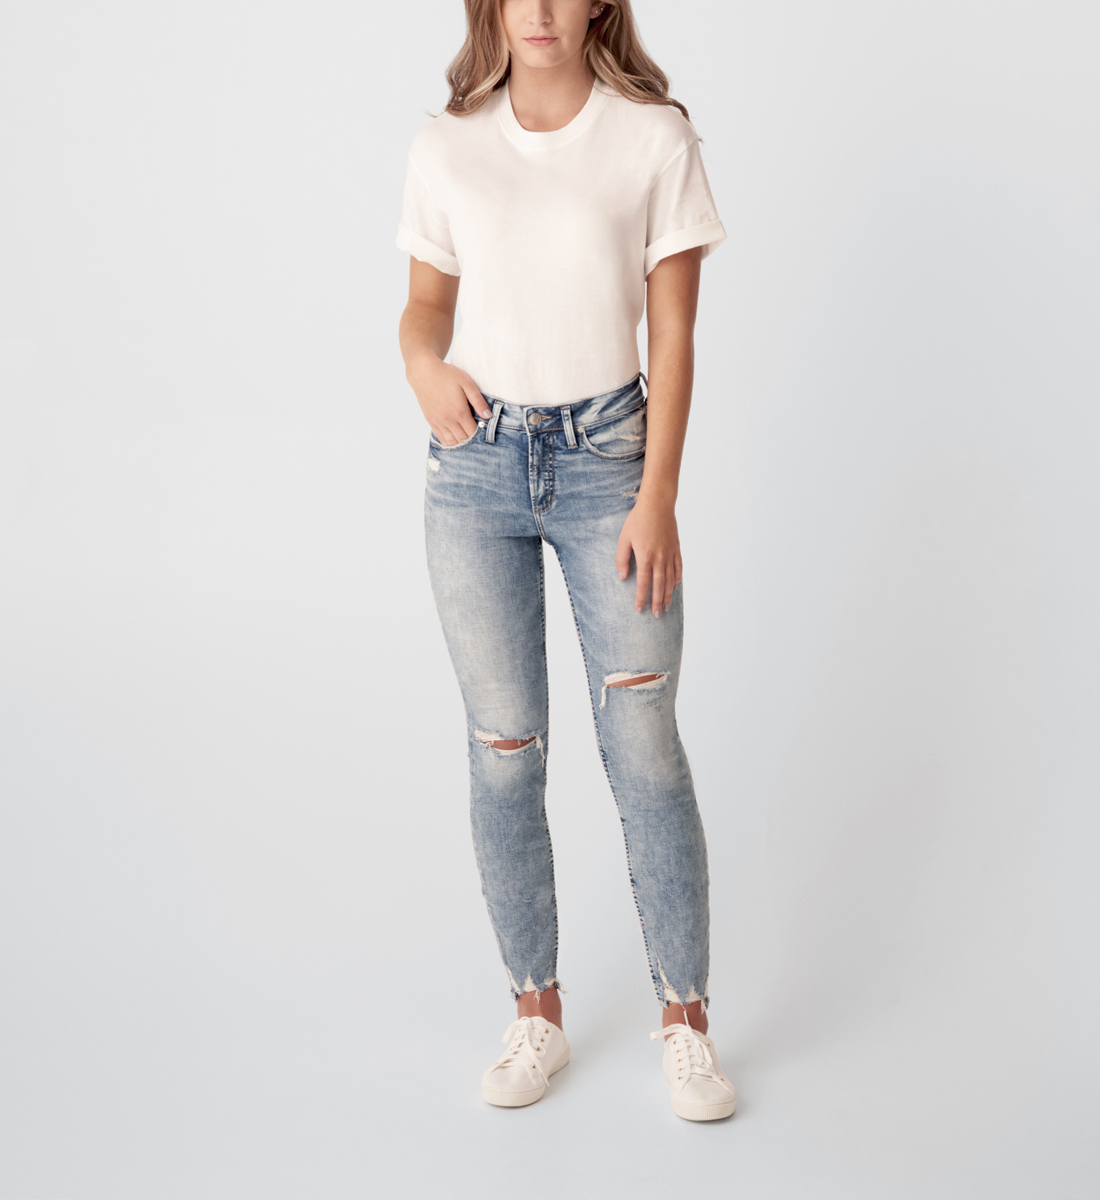 Silver Jeans Avery High Rise Skinny Jeans